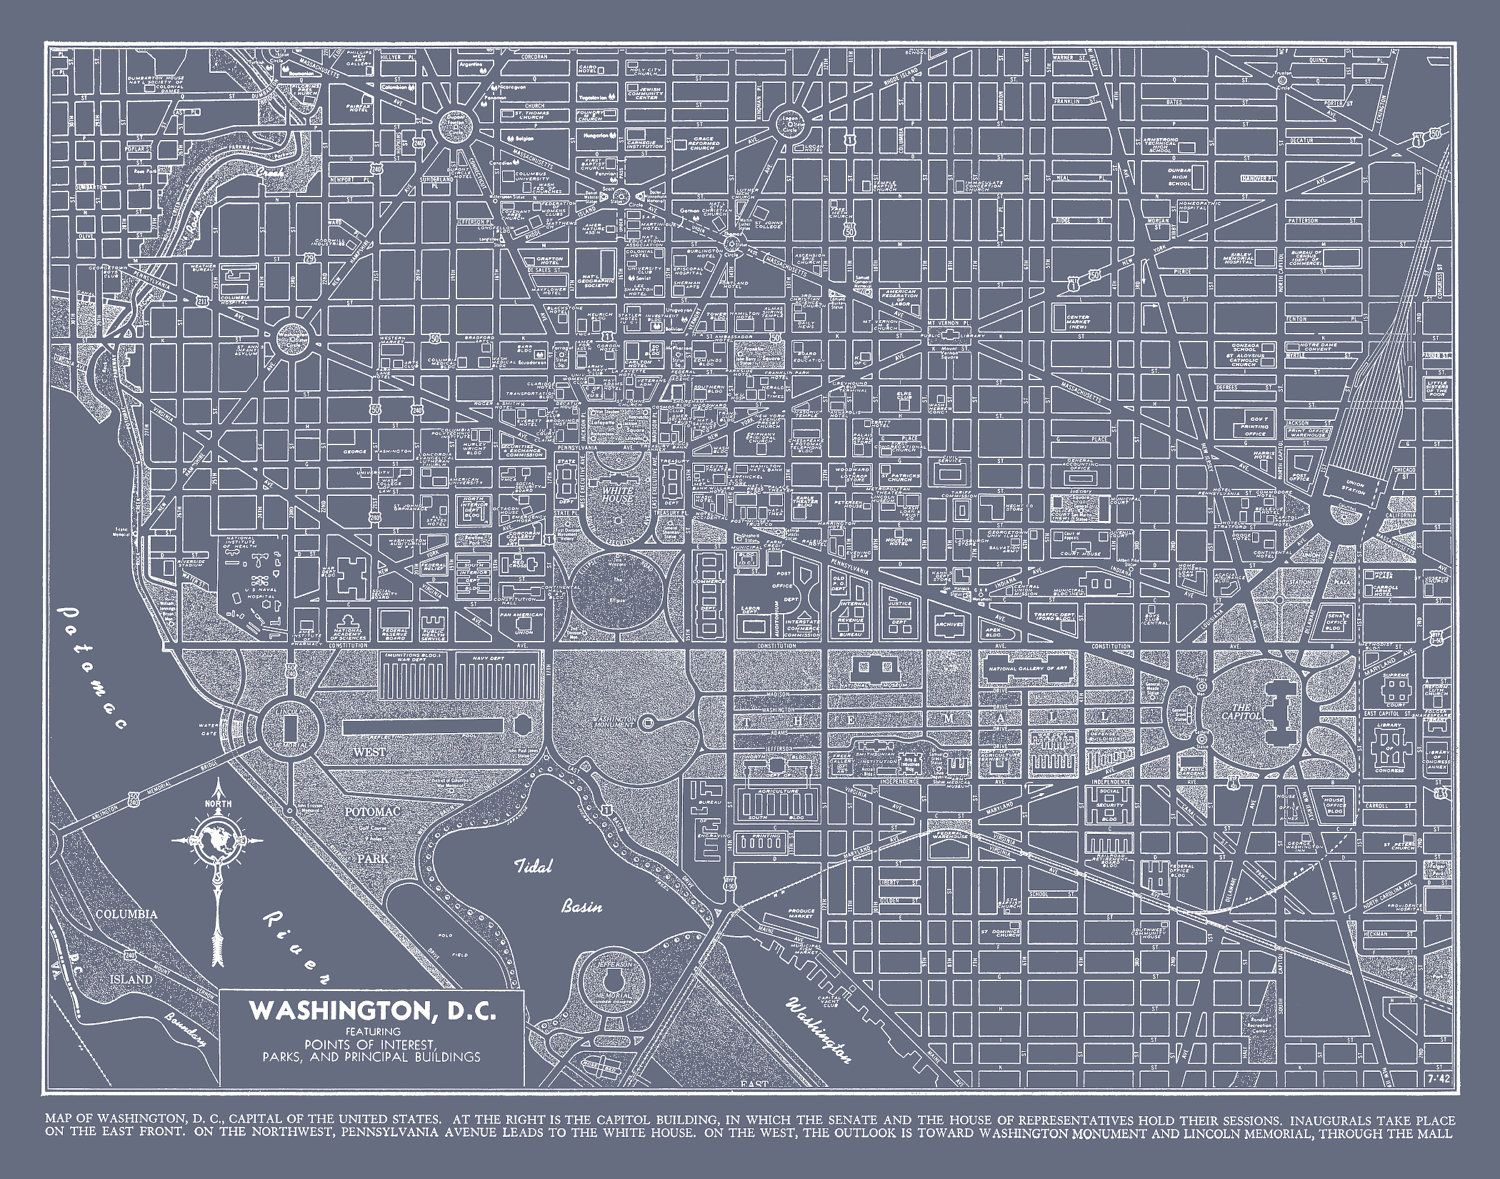 Washington DC Street Map Vintage Gray Map Print Poster Bedrooms - Washington dc capitol map